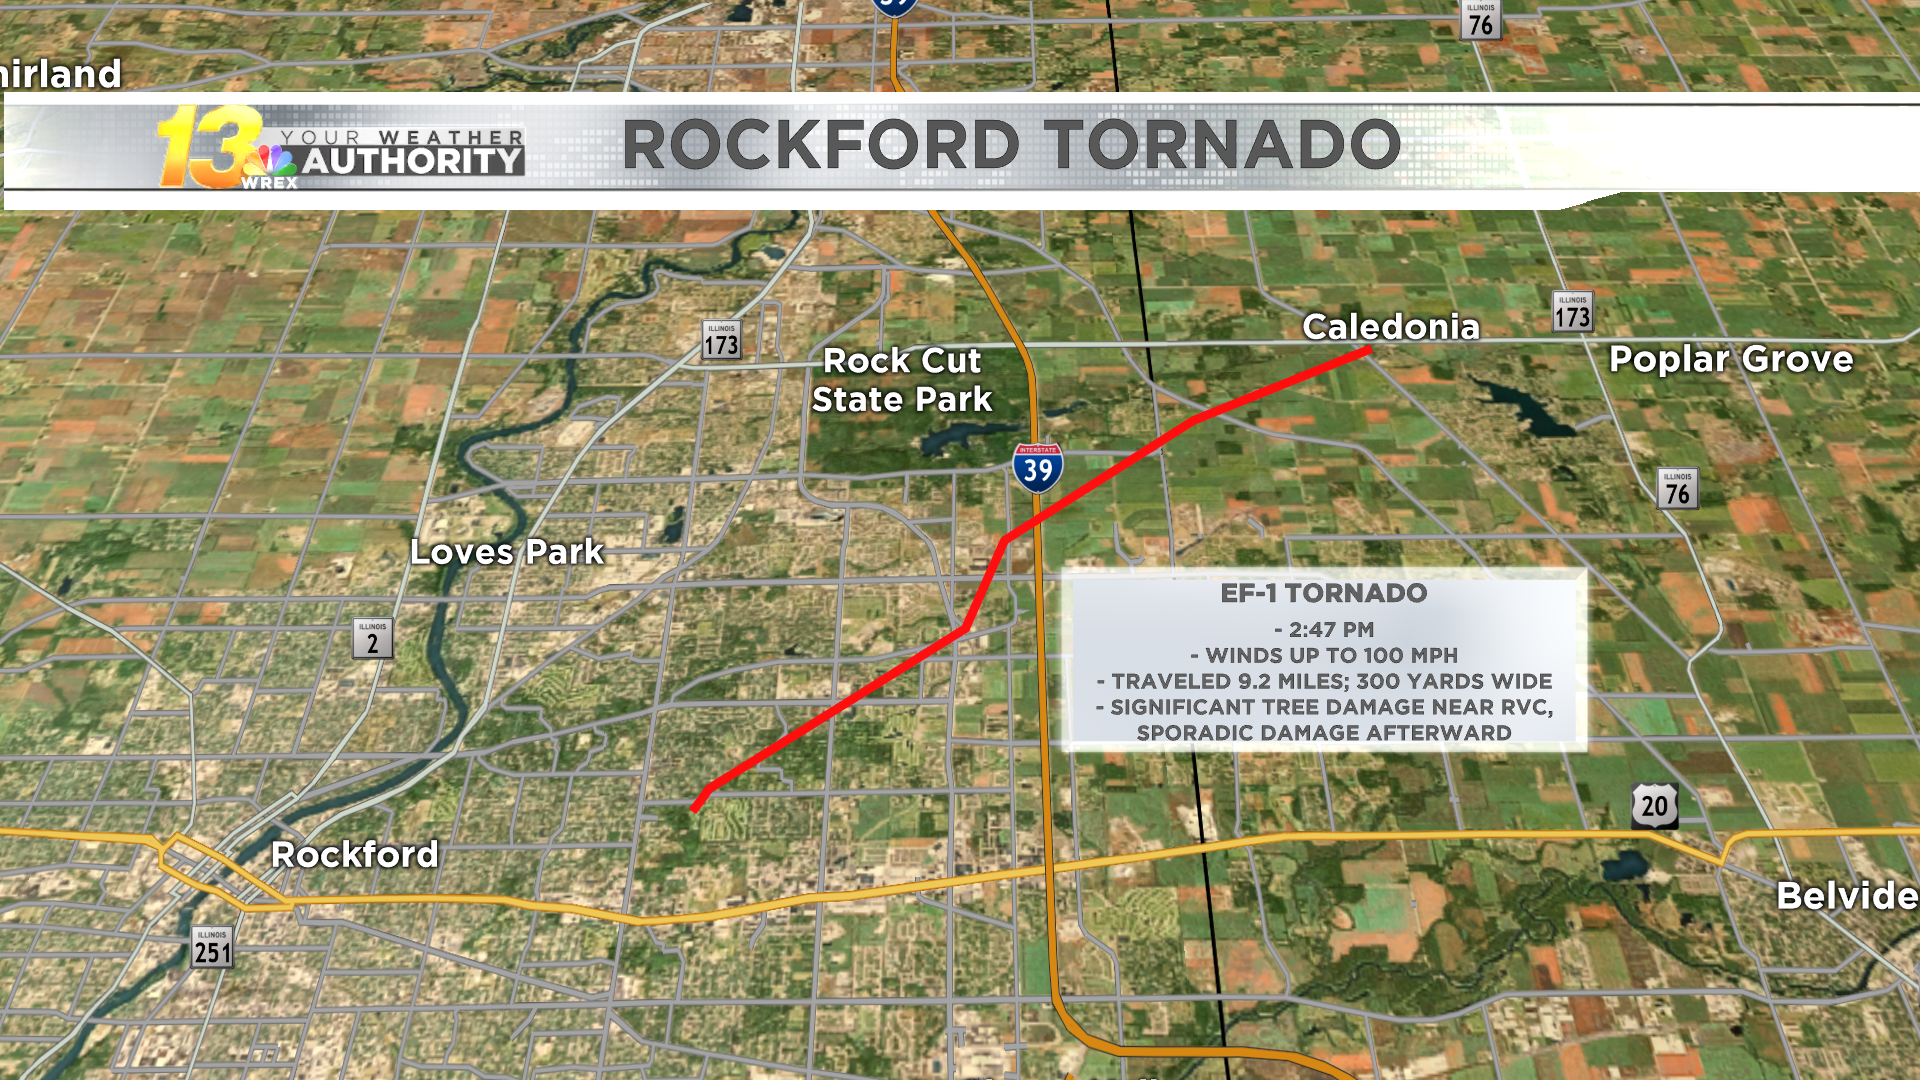 2 Confirmed Tornadoes Struck Within Monday S Derecho